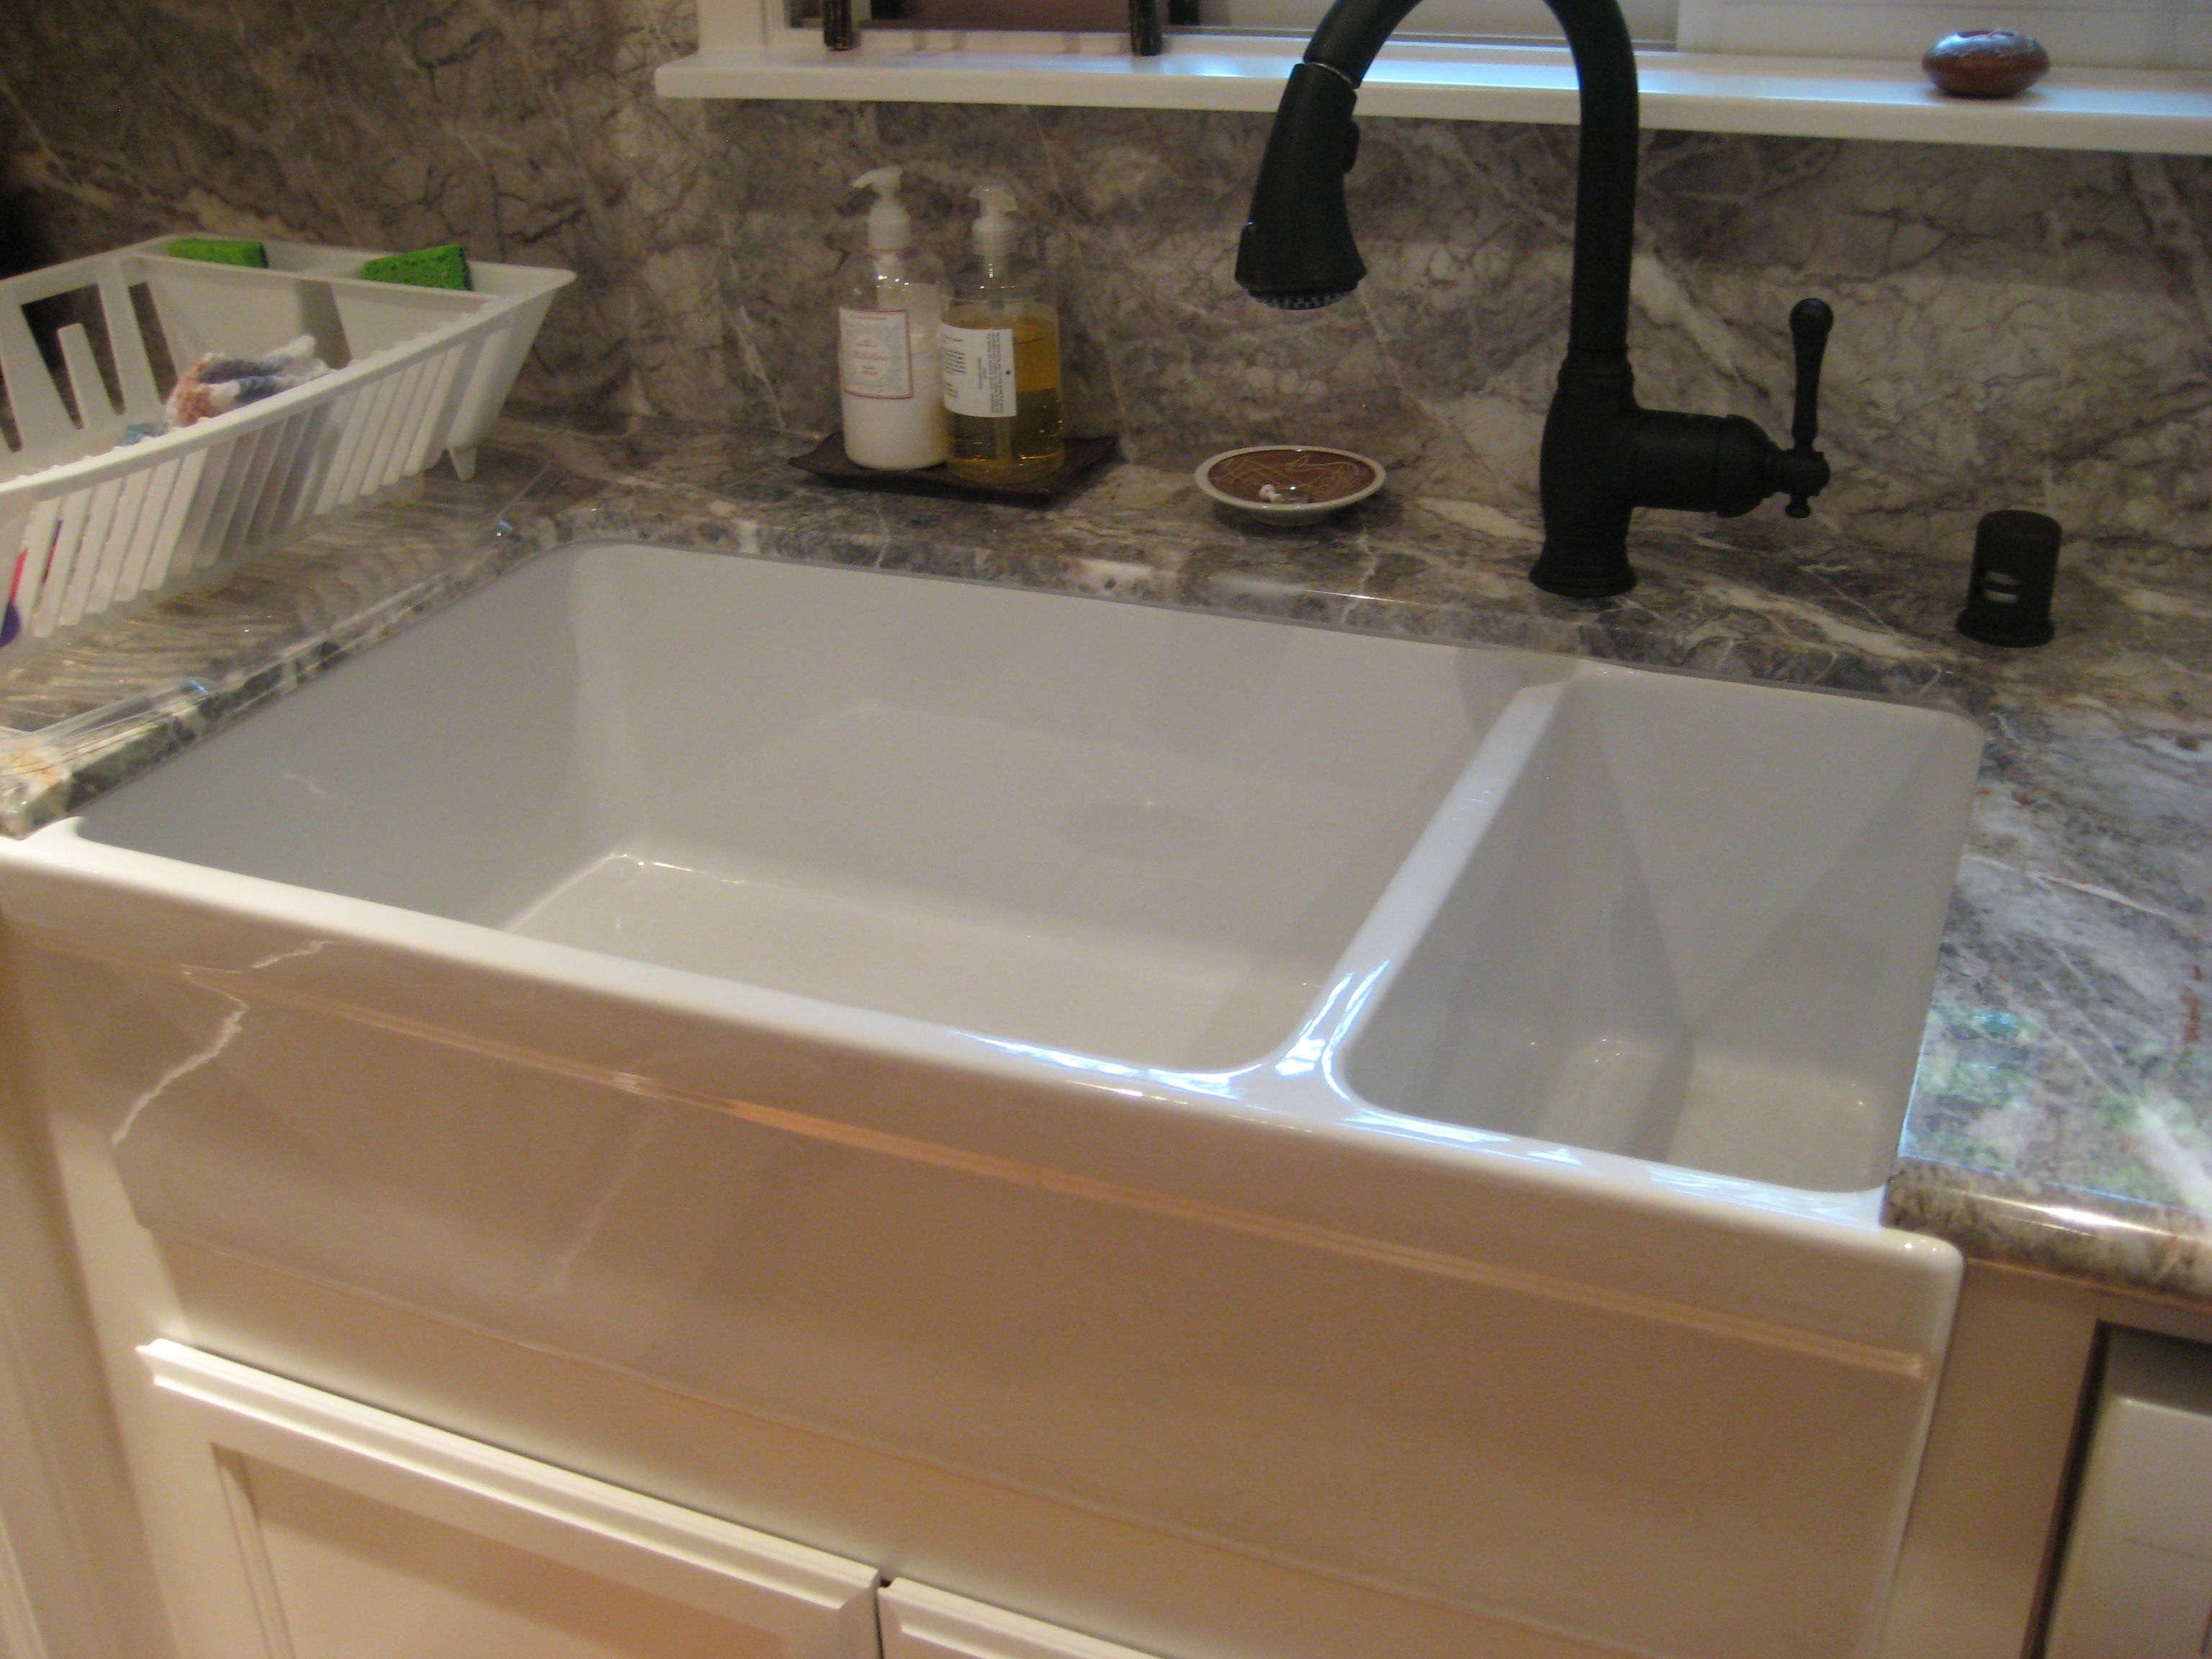 Kitchen Renovation: Before and After | Sinks, Sink design and ...